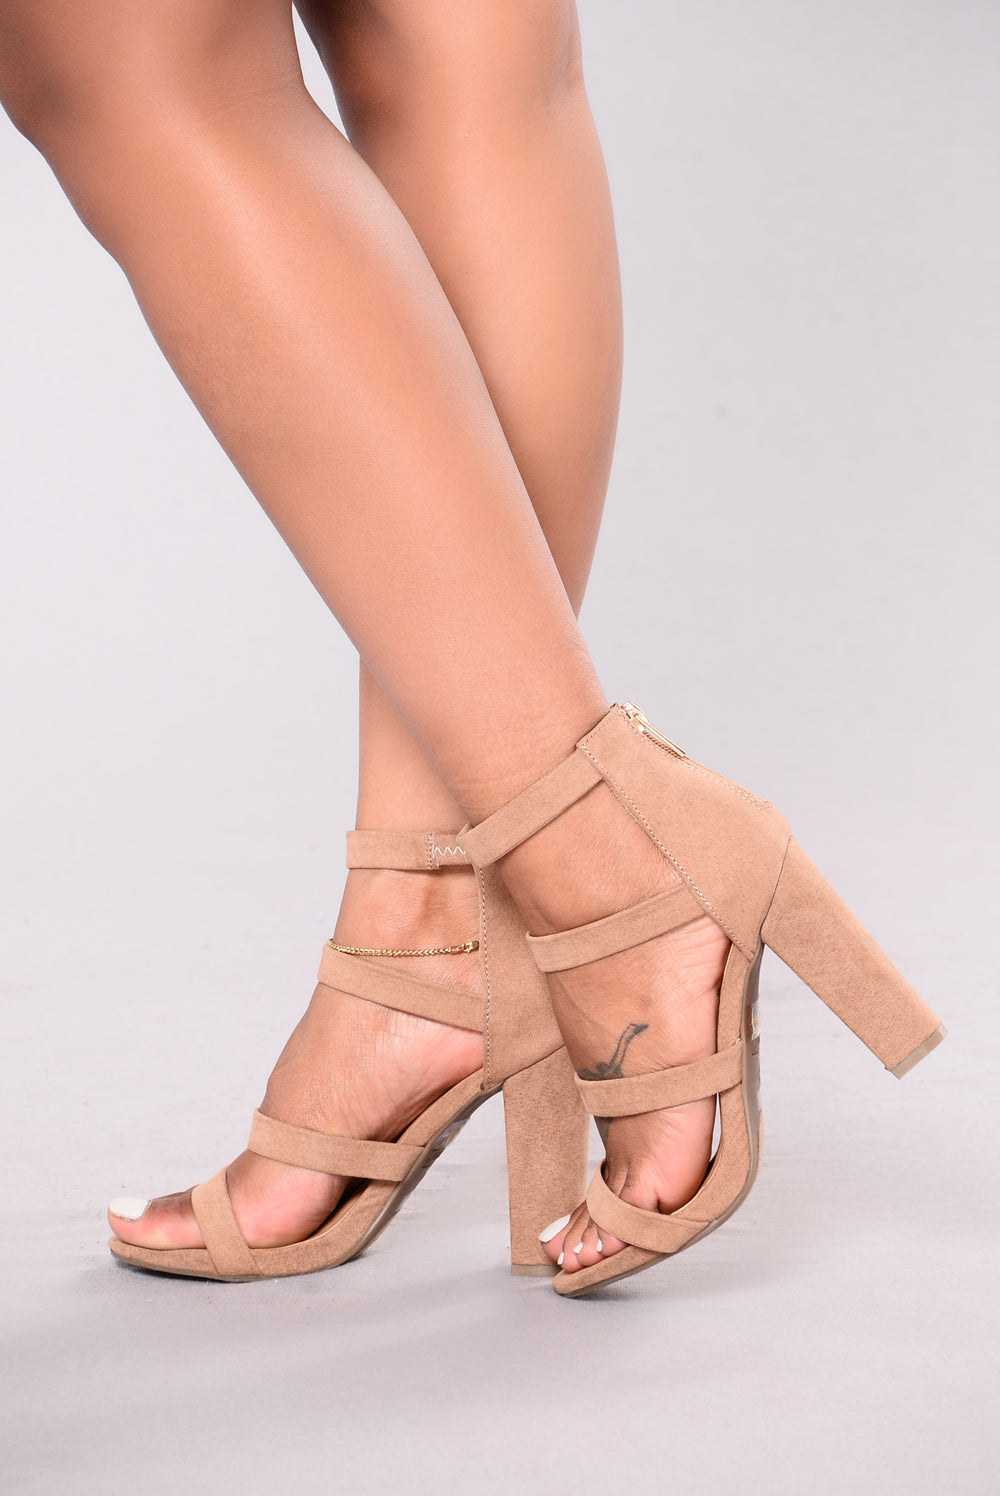 Got Nothing On Me Heels - Nude